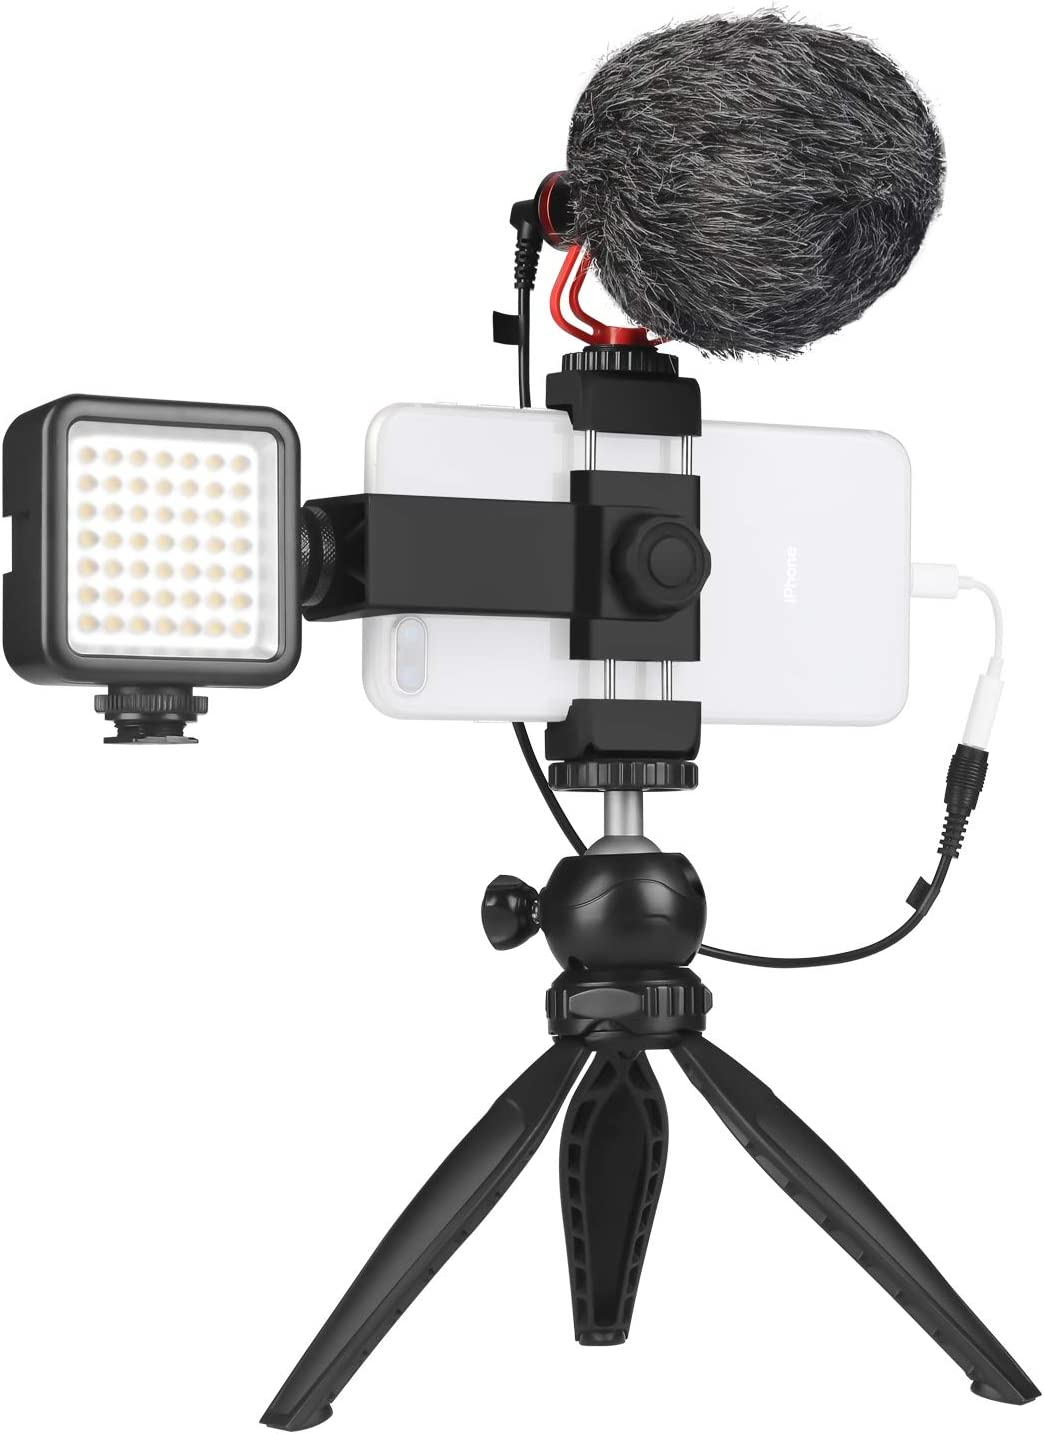 Smartphone Video Microphone Kit with LED Light,Phone Holder,Tripod Vertical & Horizontal Vlog YouTube Filmmaker Video Kit for iPhone 7 8 X XS MAX 11 Pro Samsung Huawe